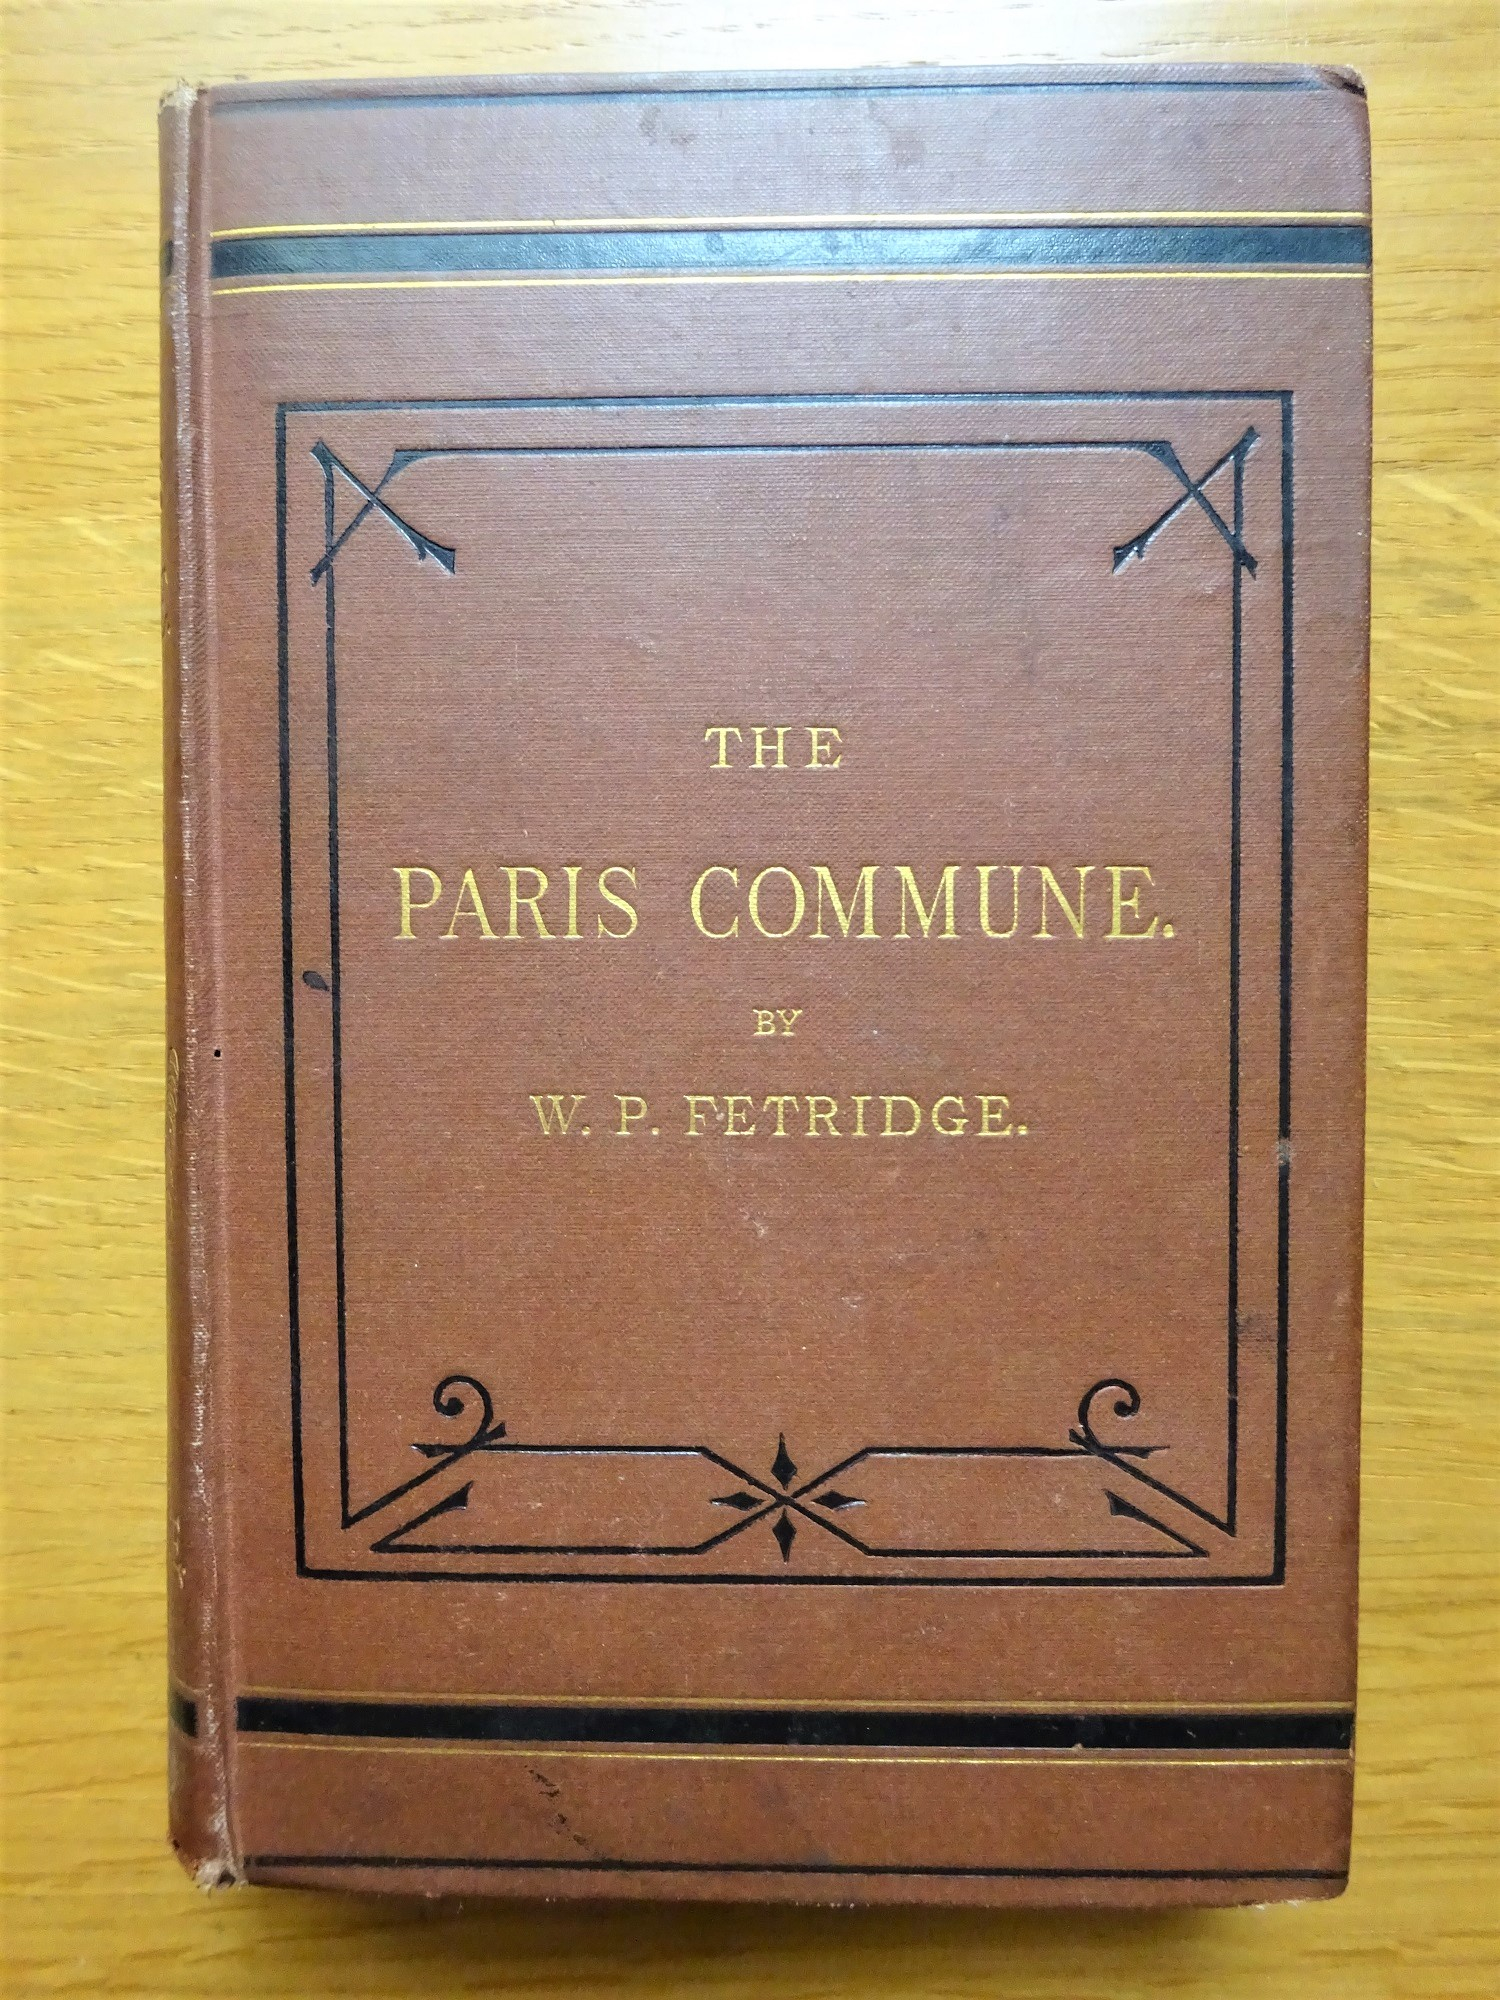 The rise and fall of  the Paris Commune in 1871